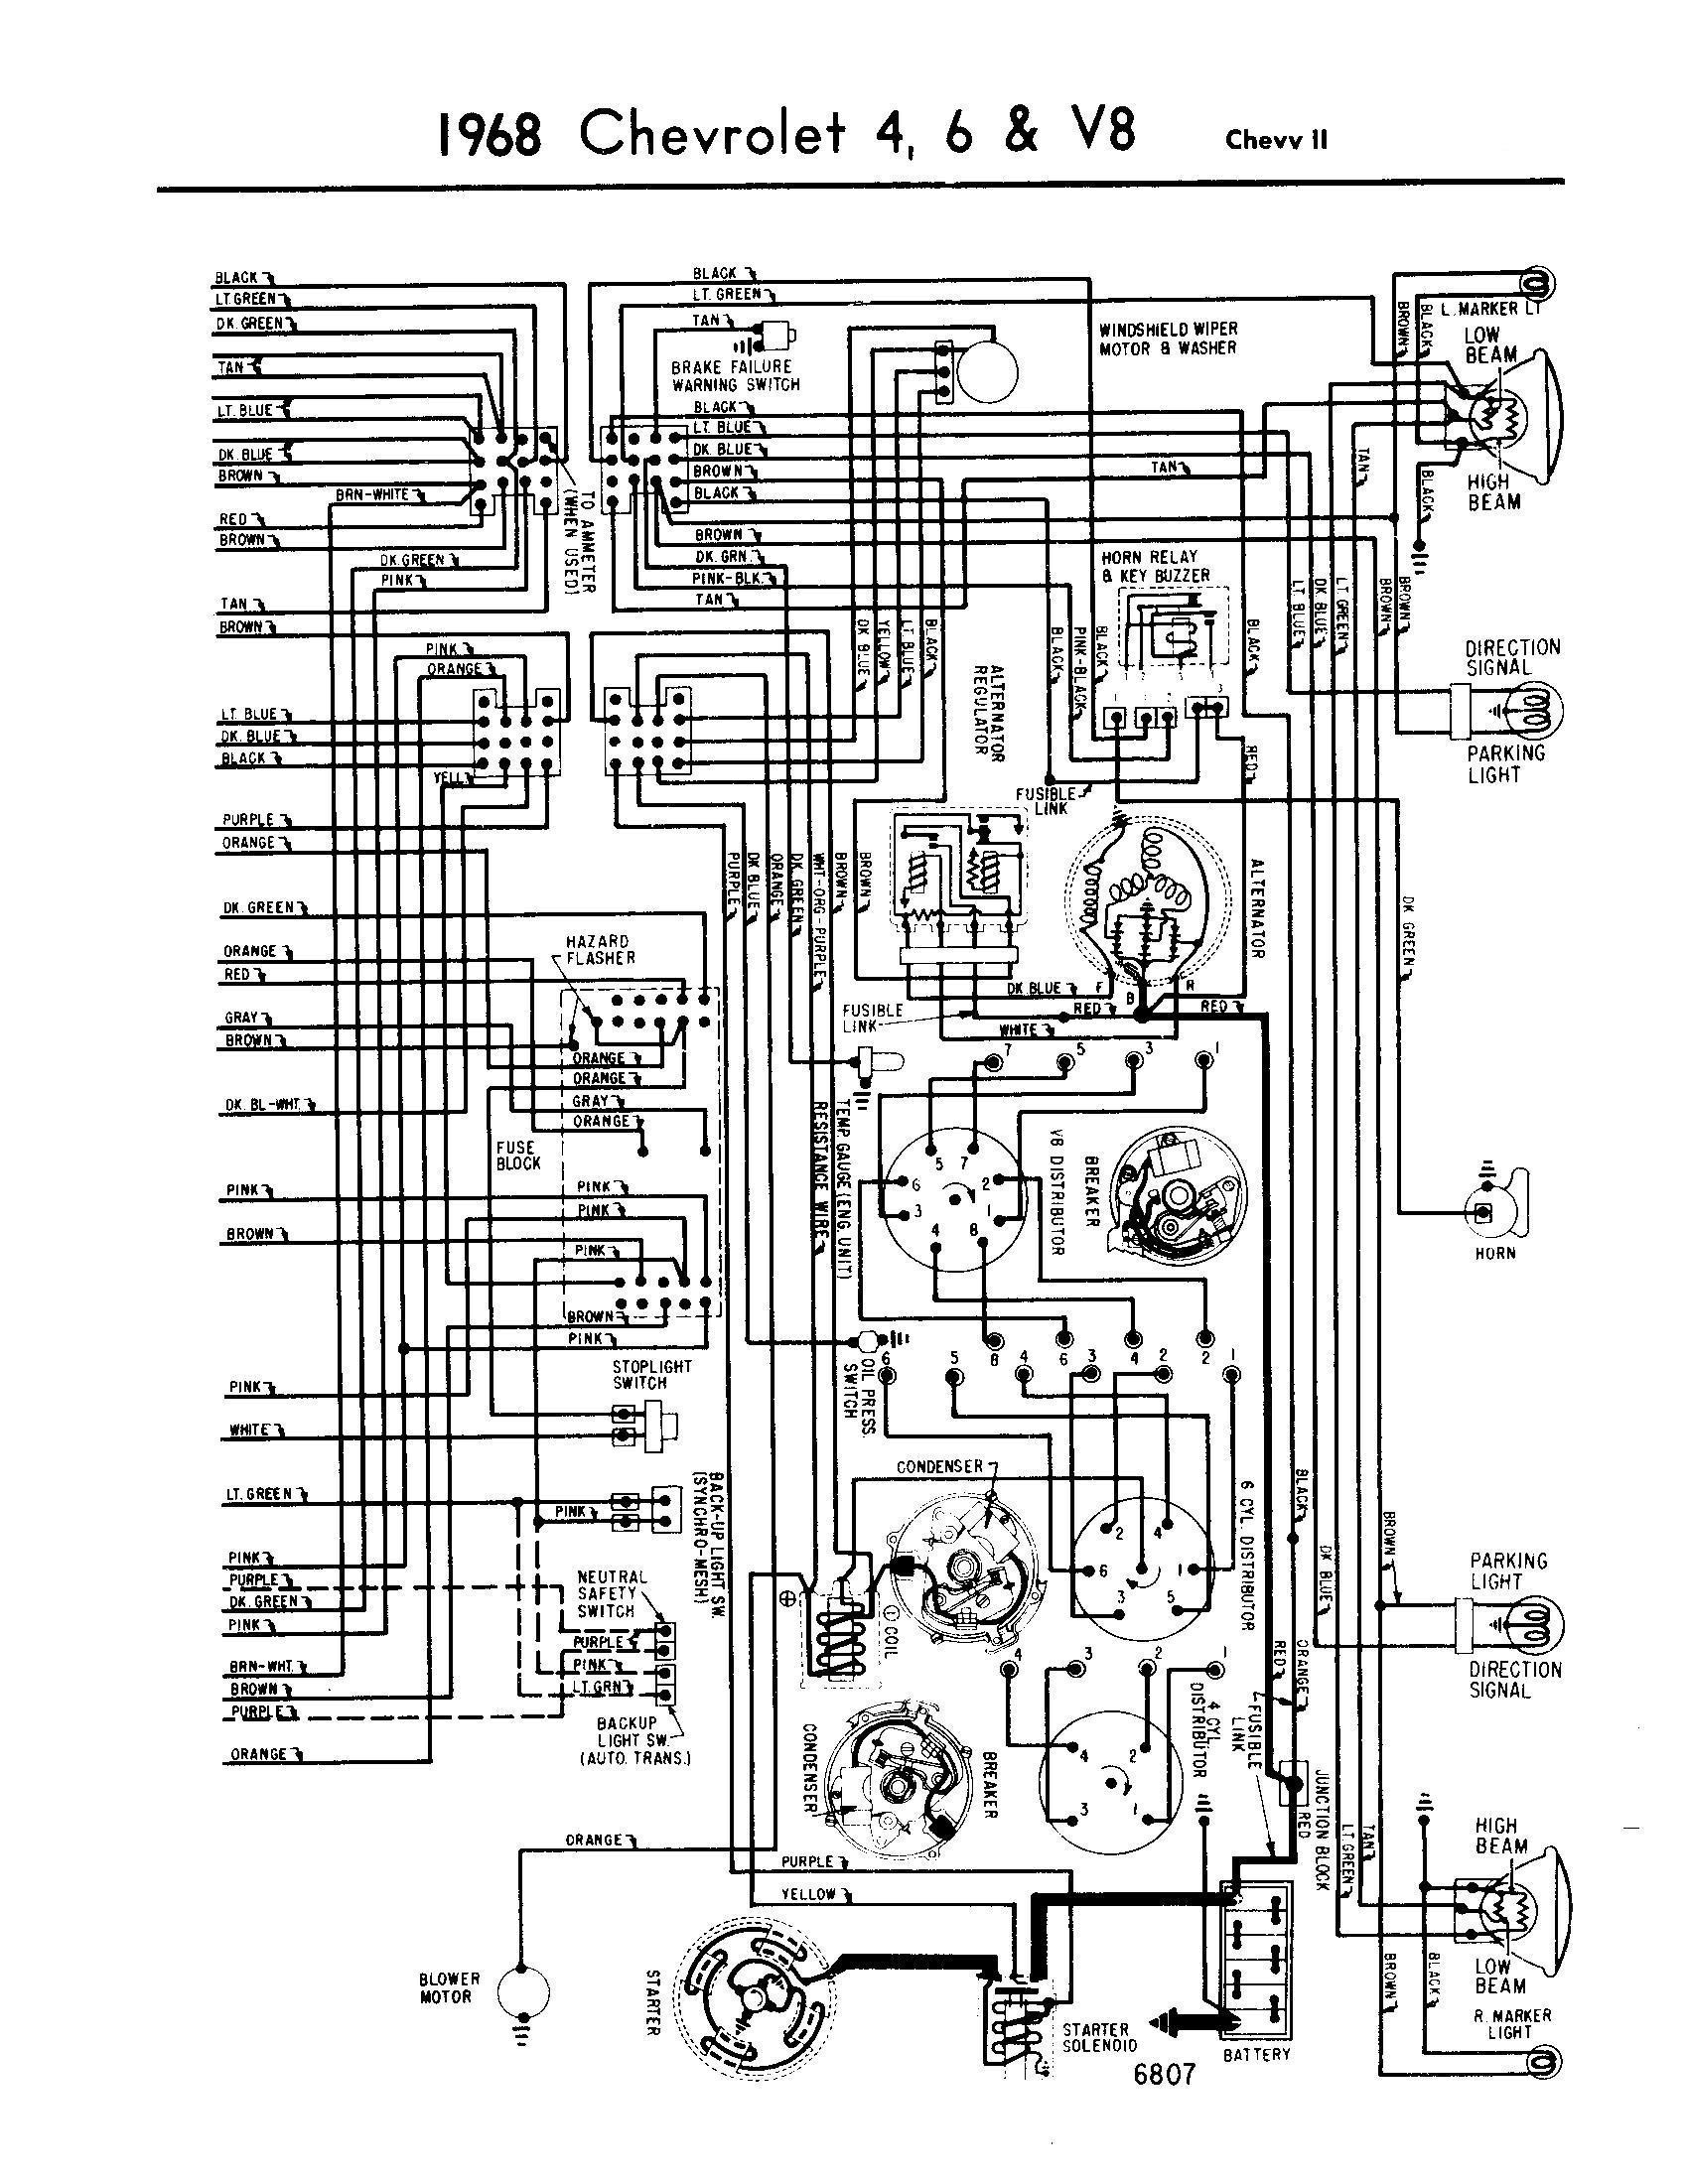 1970 Camaro Headlight Switch Wiring Diagram Worksheet And Of Body Cavity Free Download Diagrams Pictures 68 Horn Relay Harness Bgmt Data U2022 Rh App Carrot Ie Chevy Ford